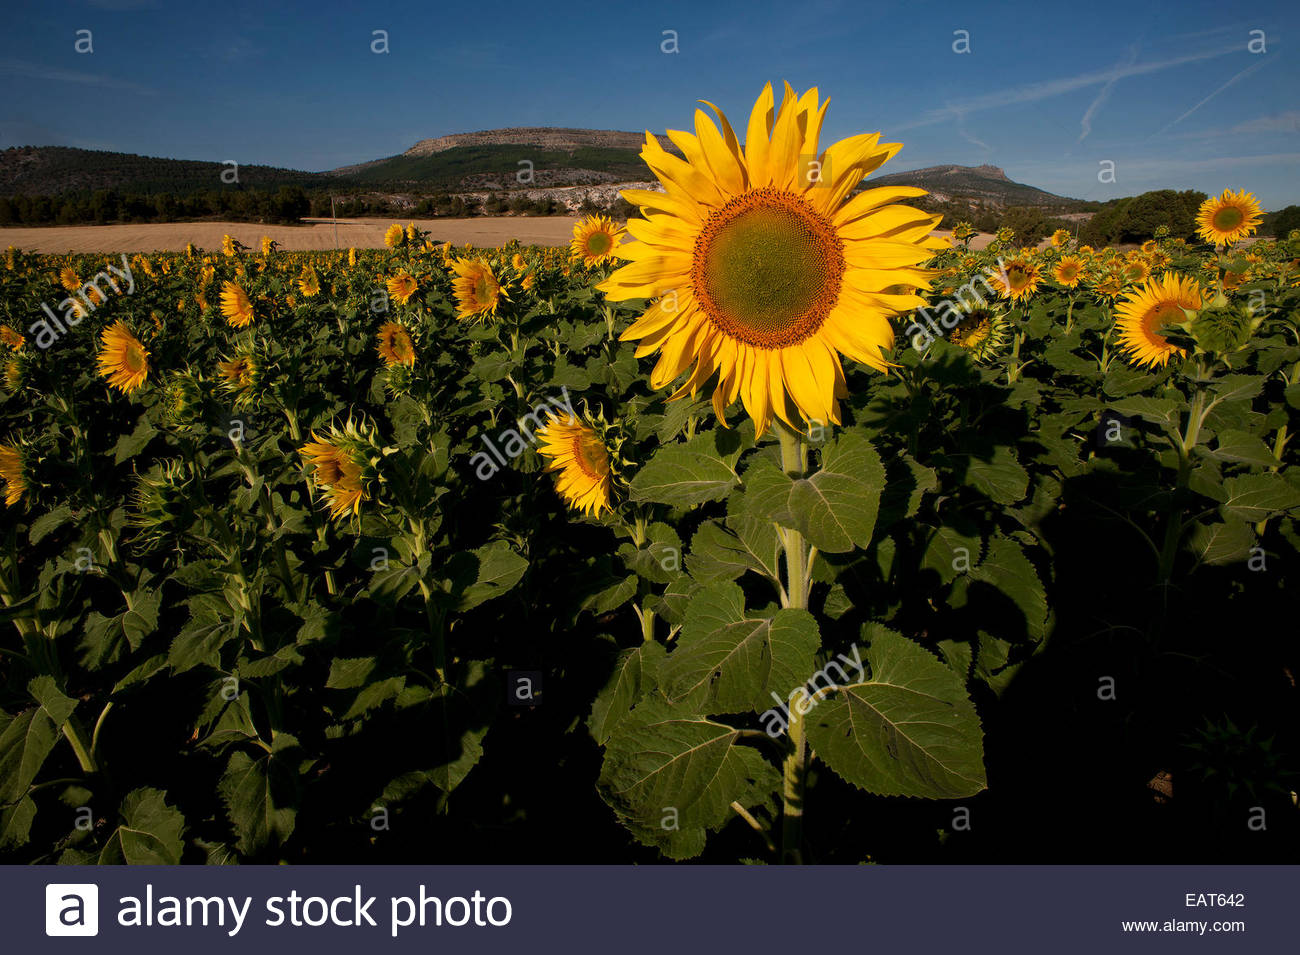 A field of sunflowers in Covarrubias. - Stock Image